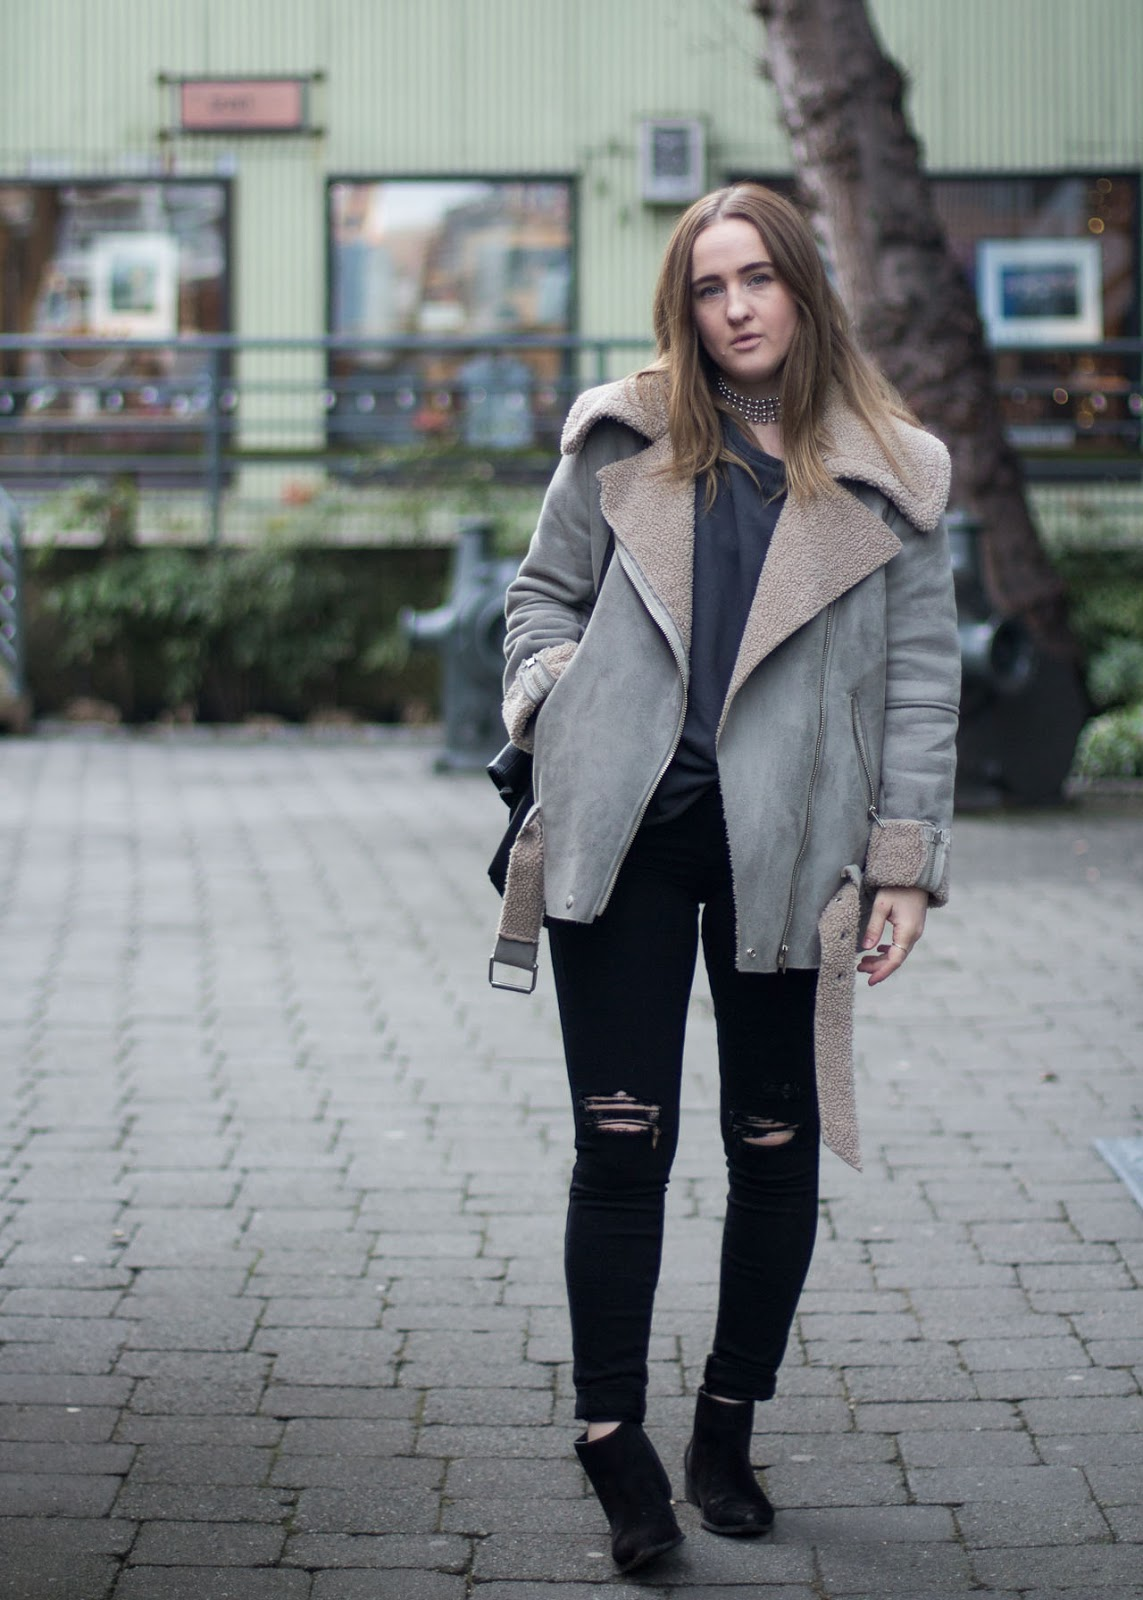 Vancouver Fashion Blogger - Winter style outfit - Noul coat - Frame jeans